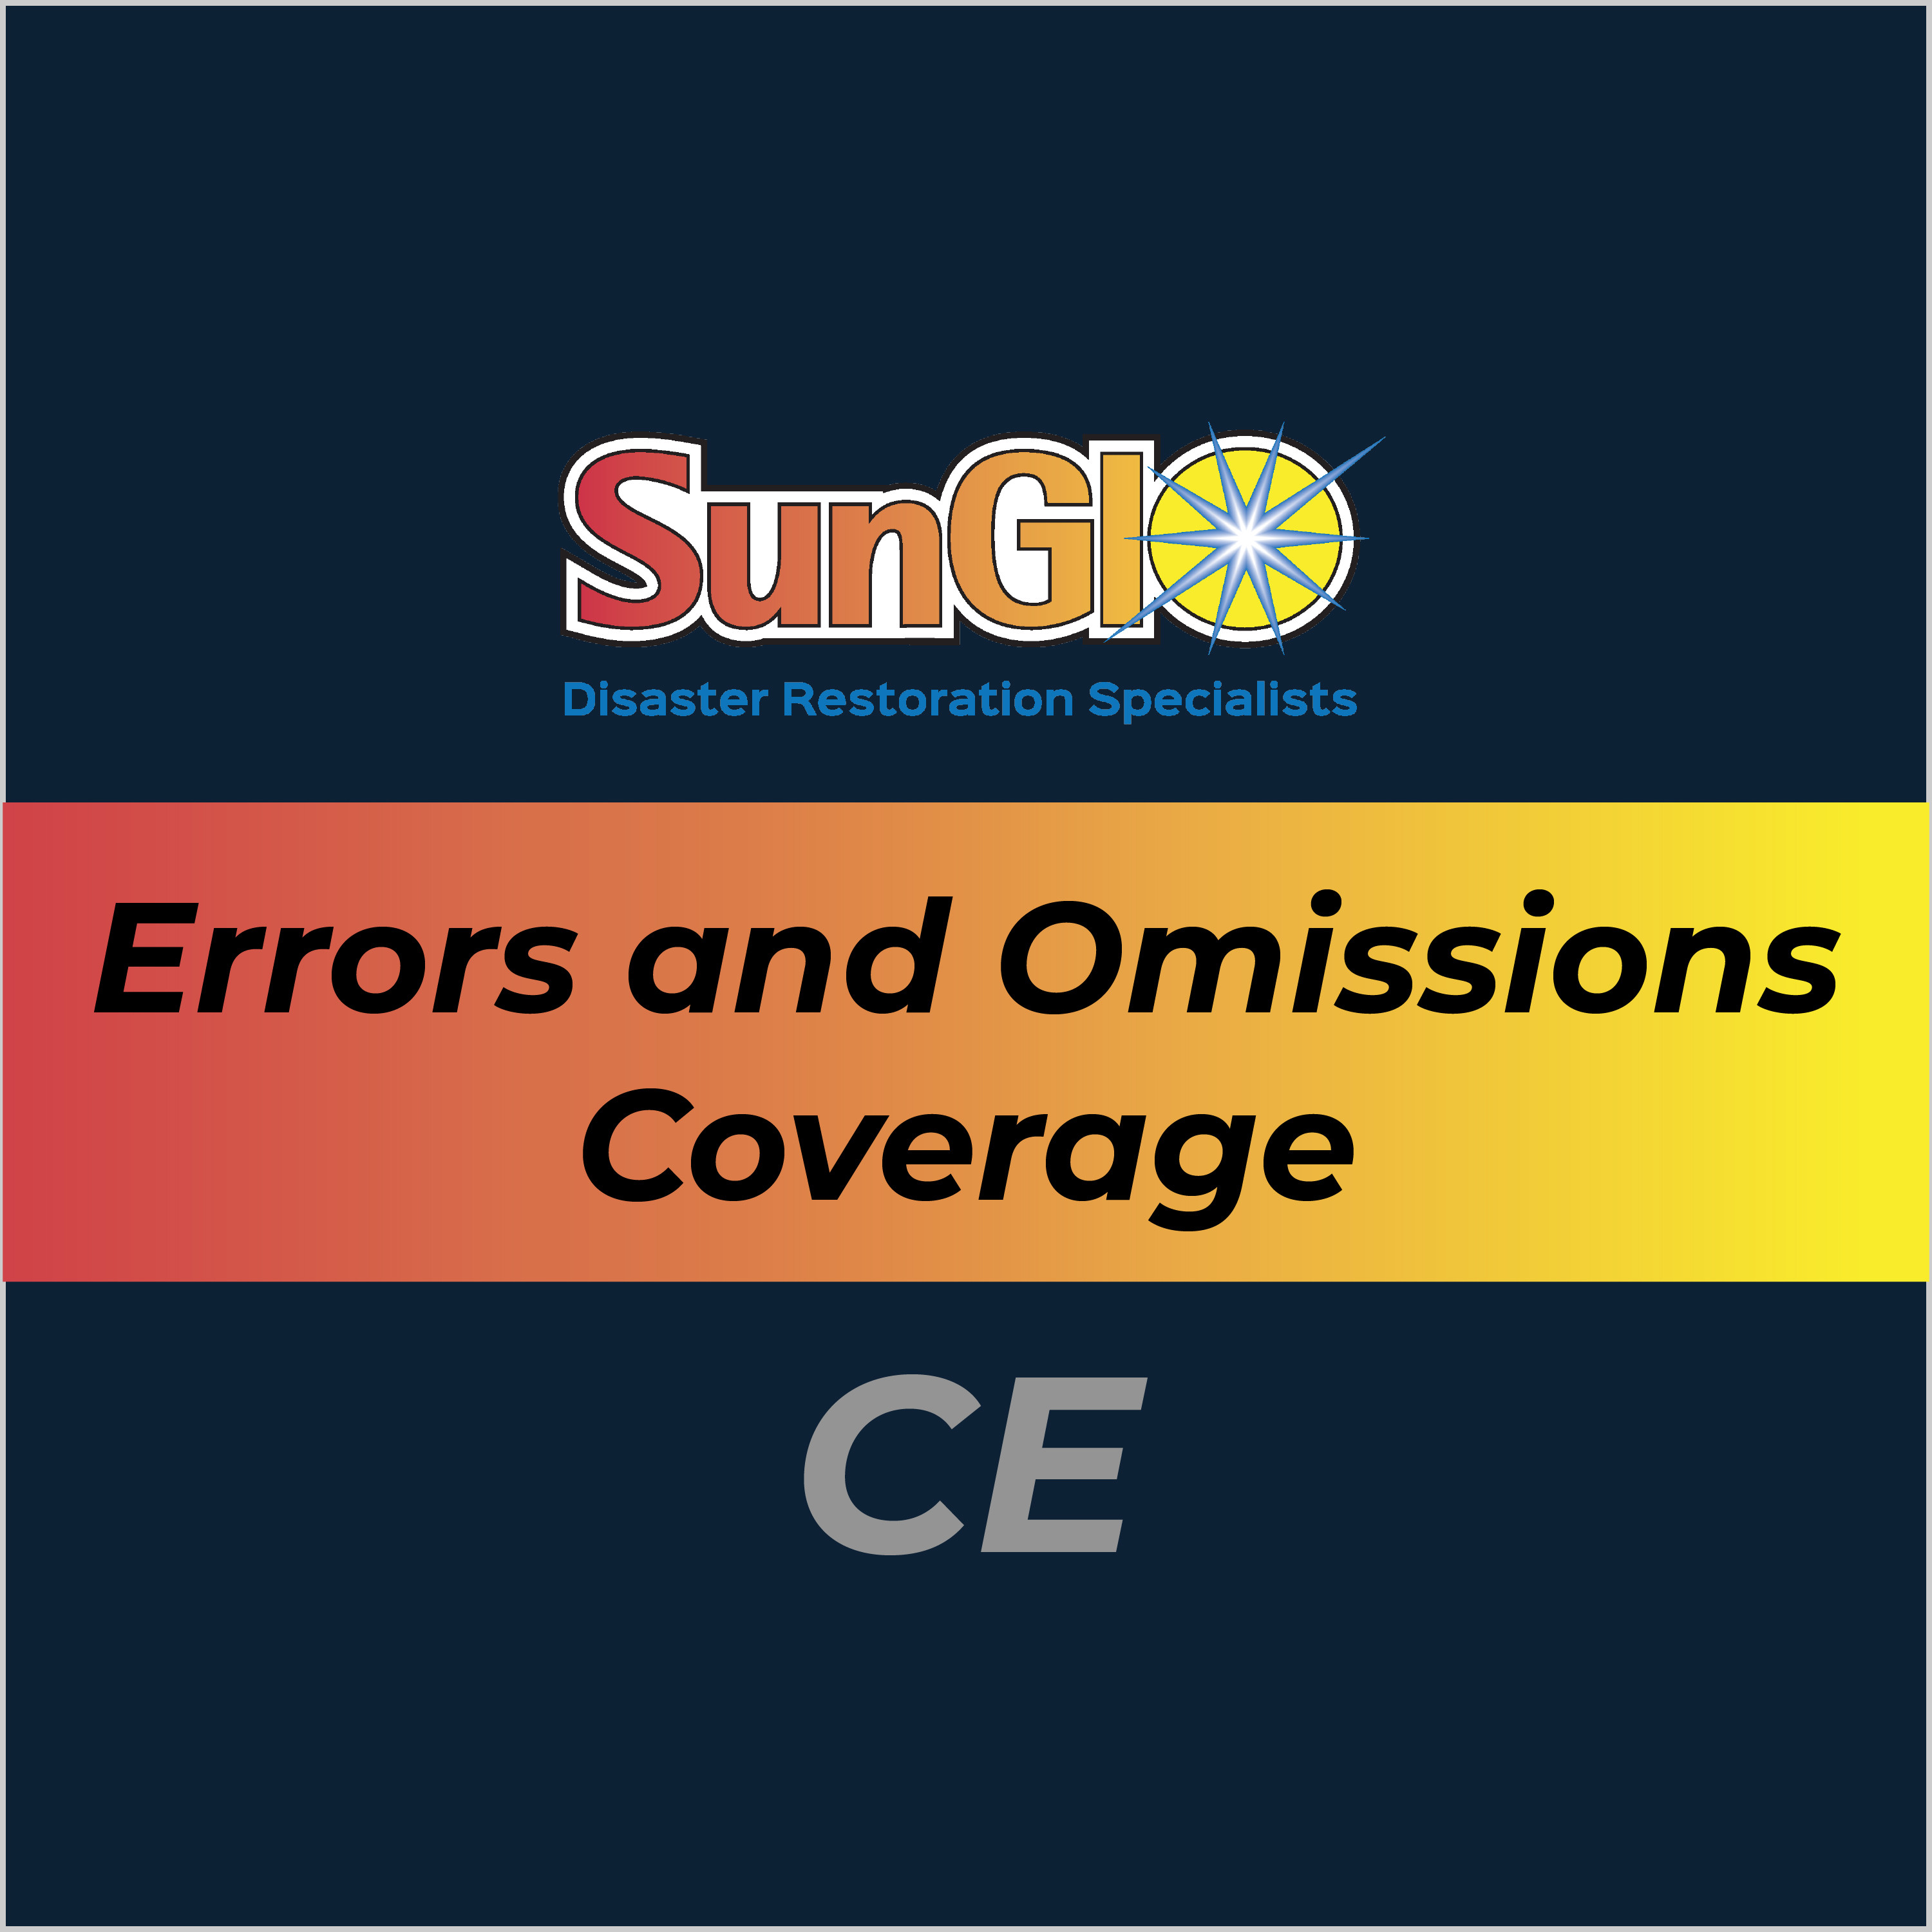 Errors and Omissions Coverage